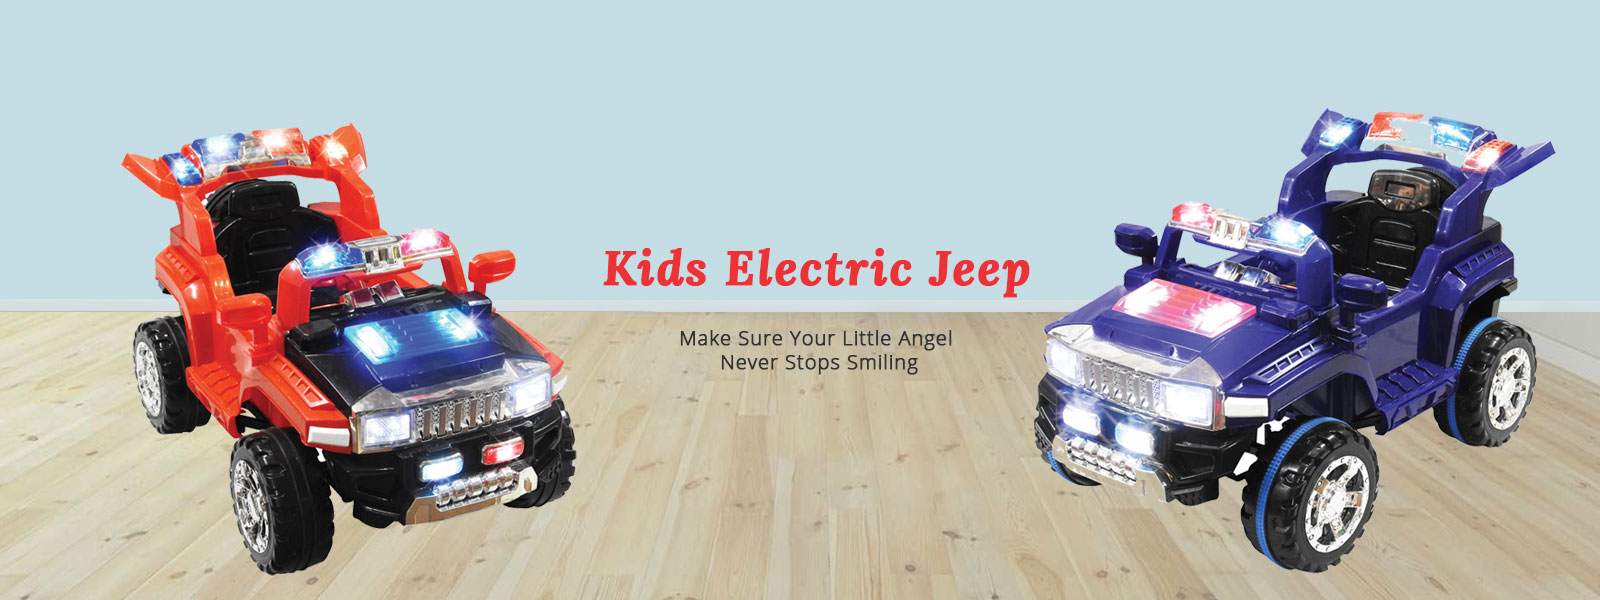 Kids Electric Jeep Manufacturers in Solapur